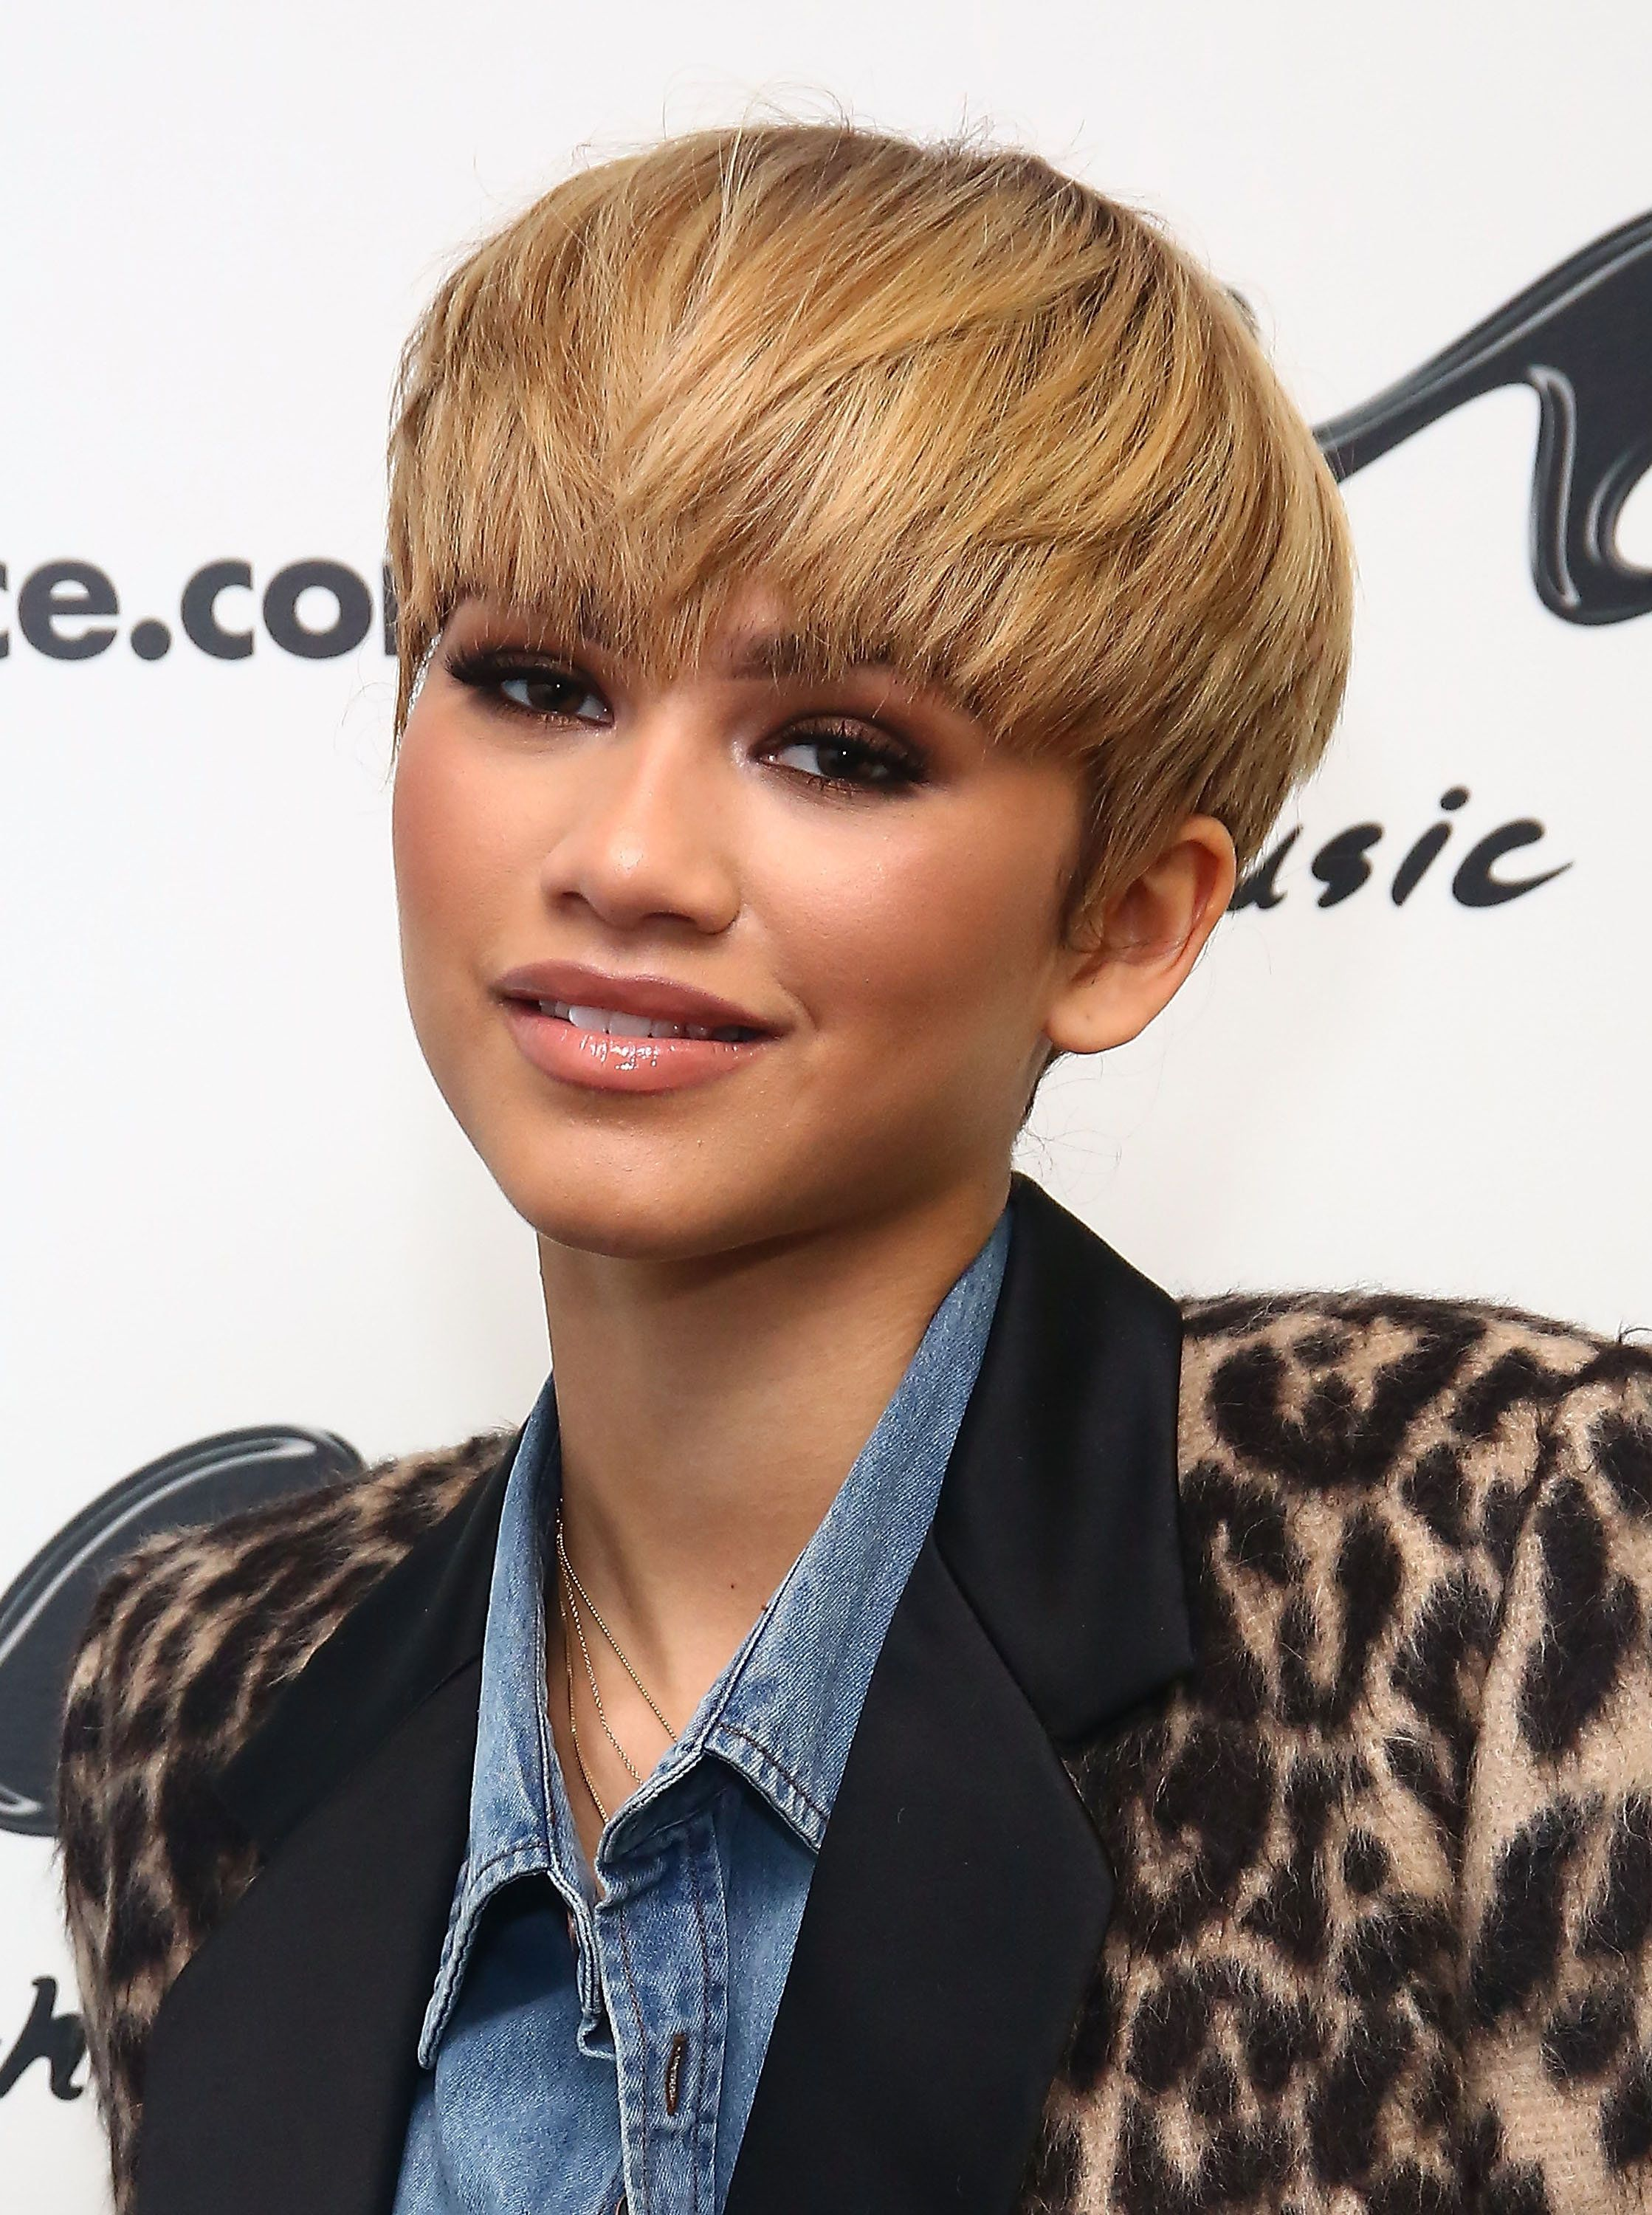 NEW YORK, NY - FEBRUARY 22:  Actress/Singer Zendaya visits Music Choice on February 22, 2016 in New York City.  (Photo by Astrid Stawiarz/Getty Images)